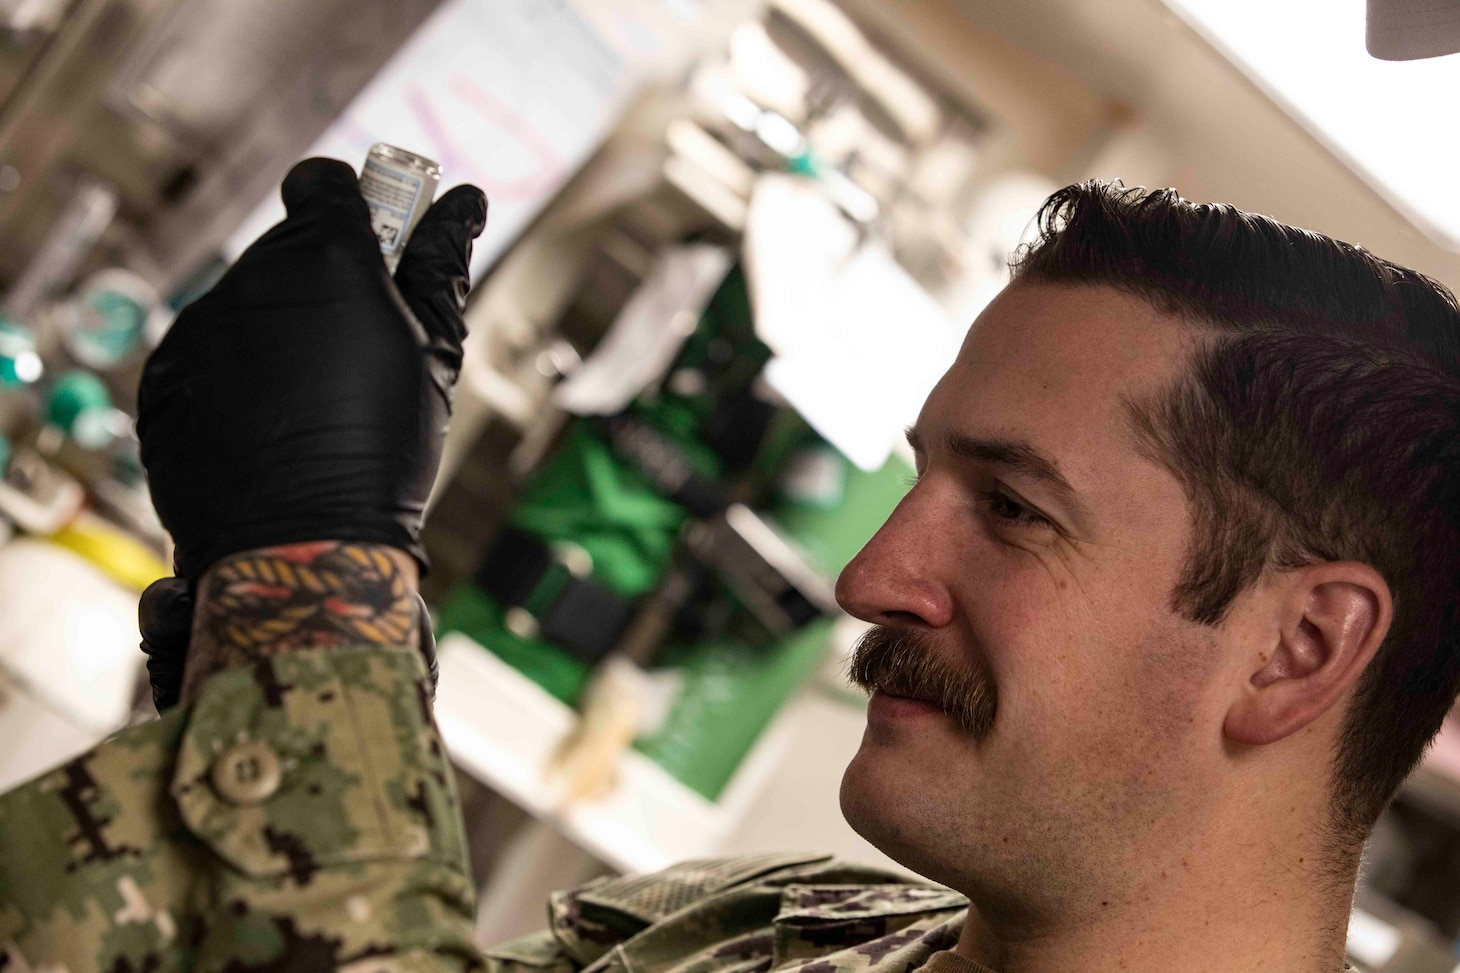 210220-N-BM428-0143 SOUDA BAY, Greece (Feb. 20, 2021) Hospital Corpsman 3rd Class Zak McBride, assigned to Naval Hospital Souda Bay, prepares a COVID-19 vaccine for use aboard the Arleigh Burke-class guided-missile destroyer USS Porter (DDG 78) in Souda Bay, Greece, Feb. 20, 2021. Porter, forward deployed to Rota, Spain, is on its ninth patrol in the U.S. Sixth Fleet area of operations in support of U.S. national interests and security in Europe and Africa. (U.S. Navy photo by Mass Communication Specialist 2nd Class Damon Grosvenor)